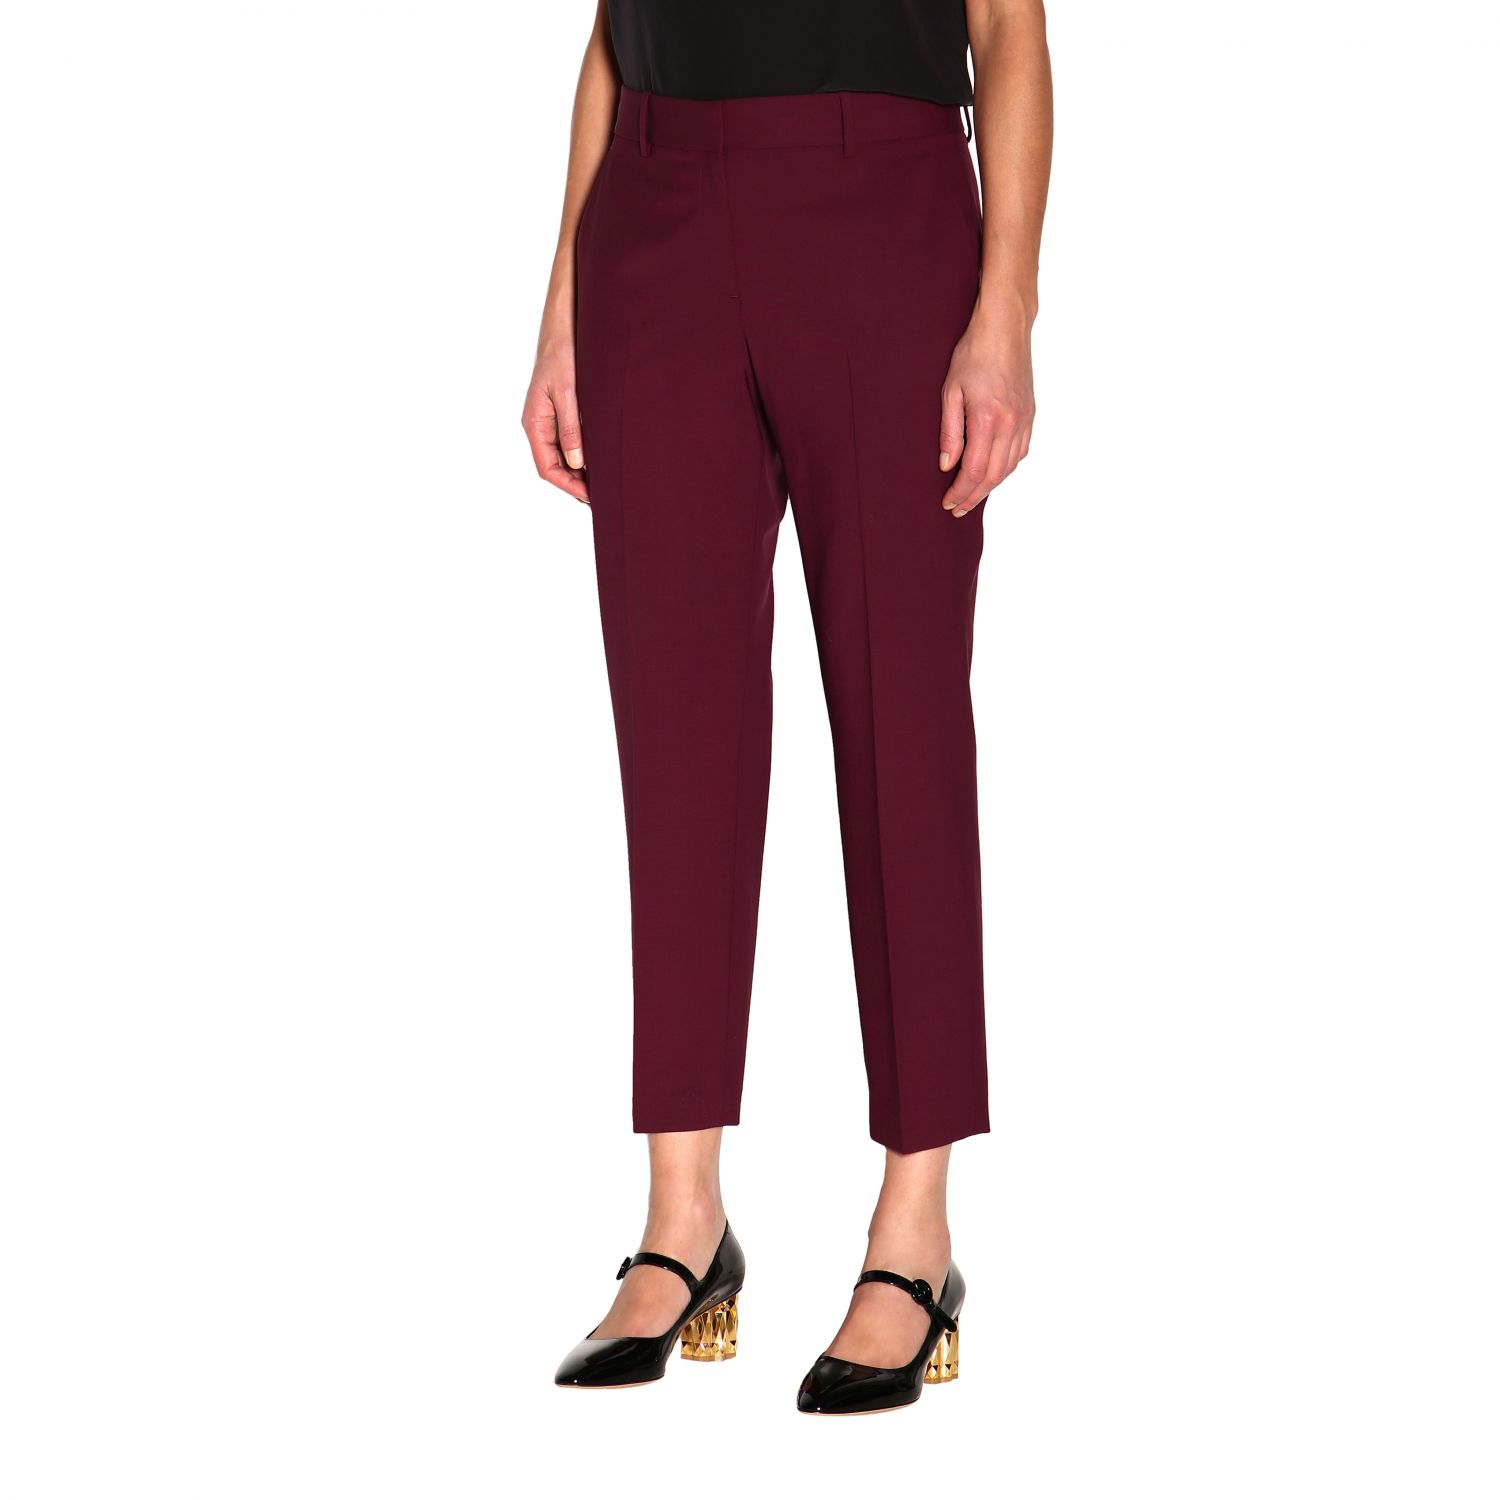 Trousers women Theory burgundy 4